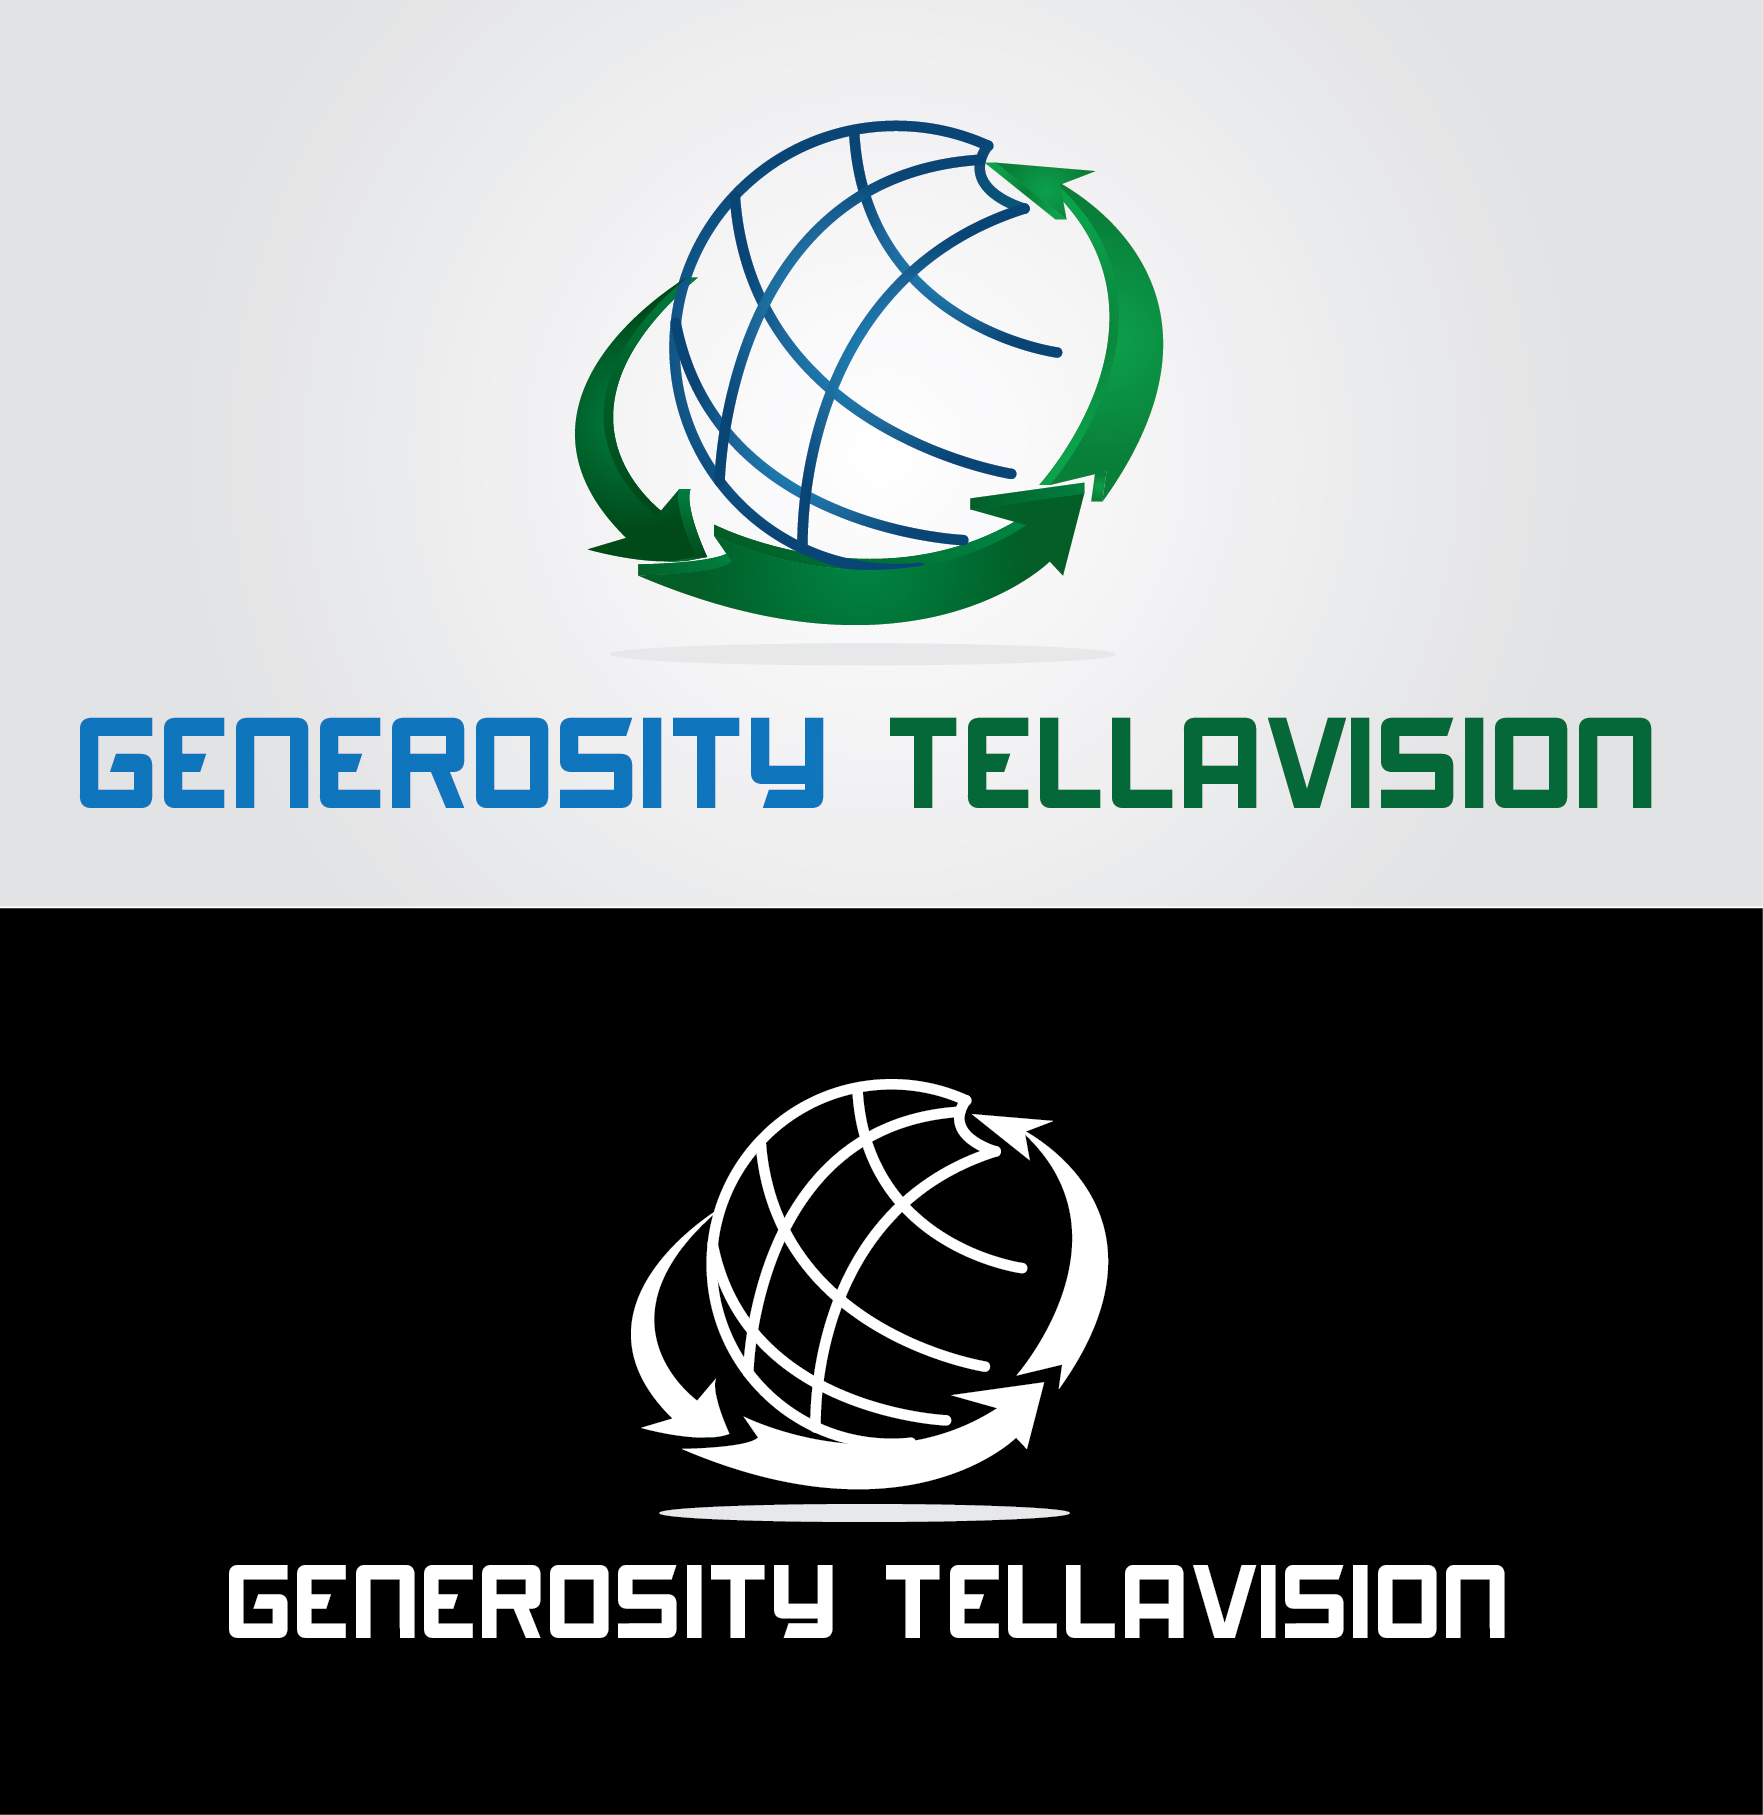 Logo Design by mediaproductionart - Entry No. 60 in the Logo Design Contest Artistic Logo Design for Generosity TellAVision.